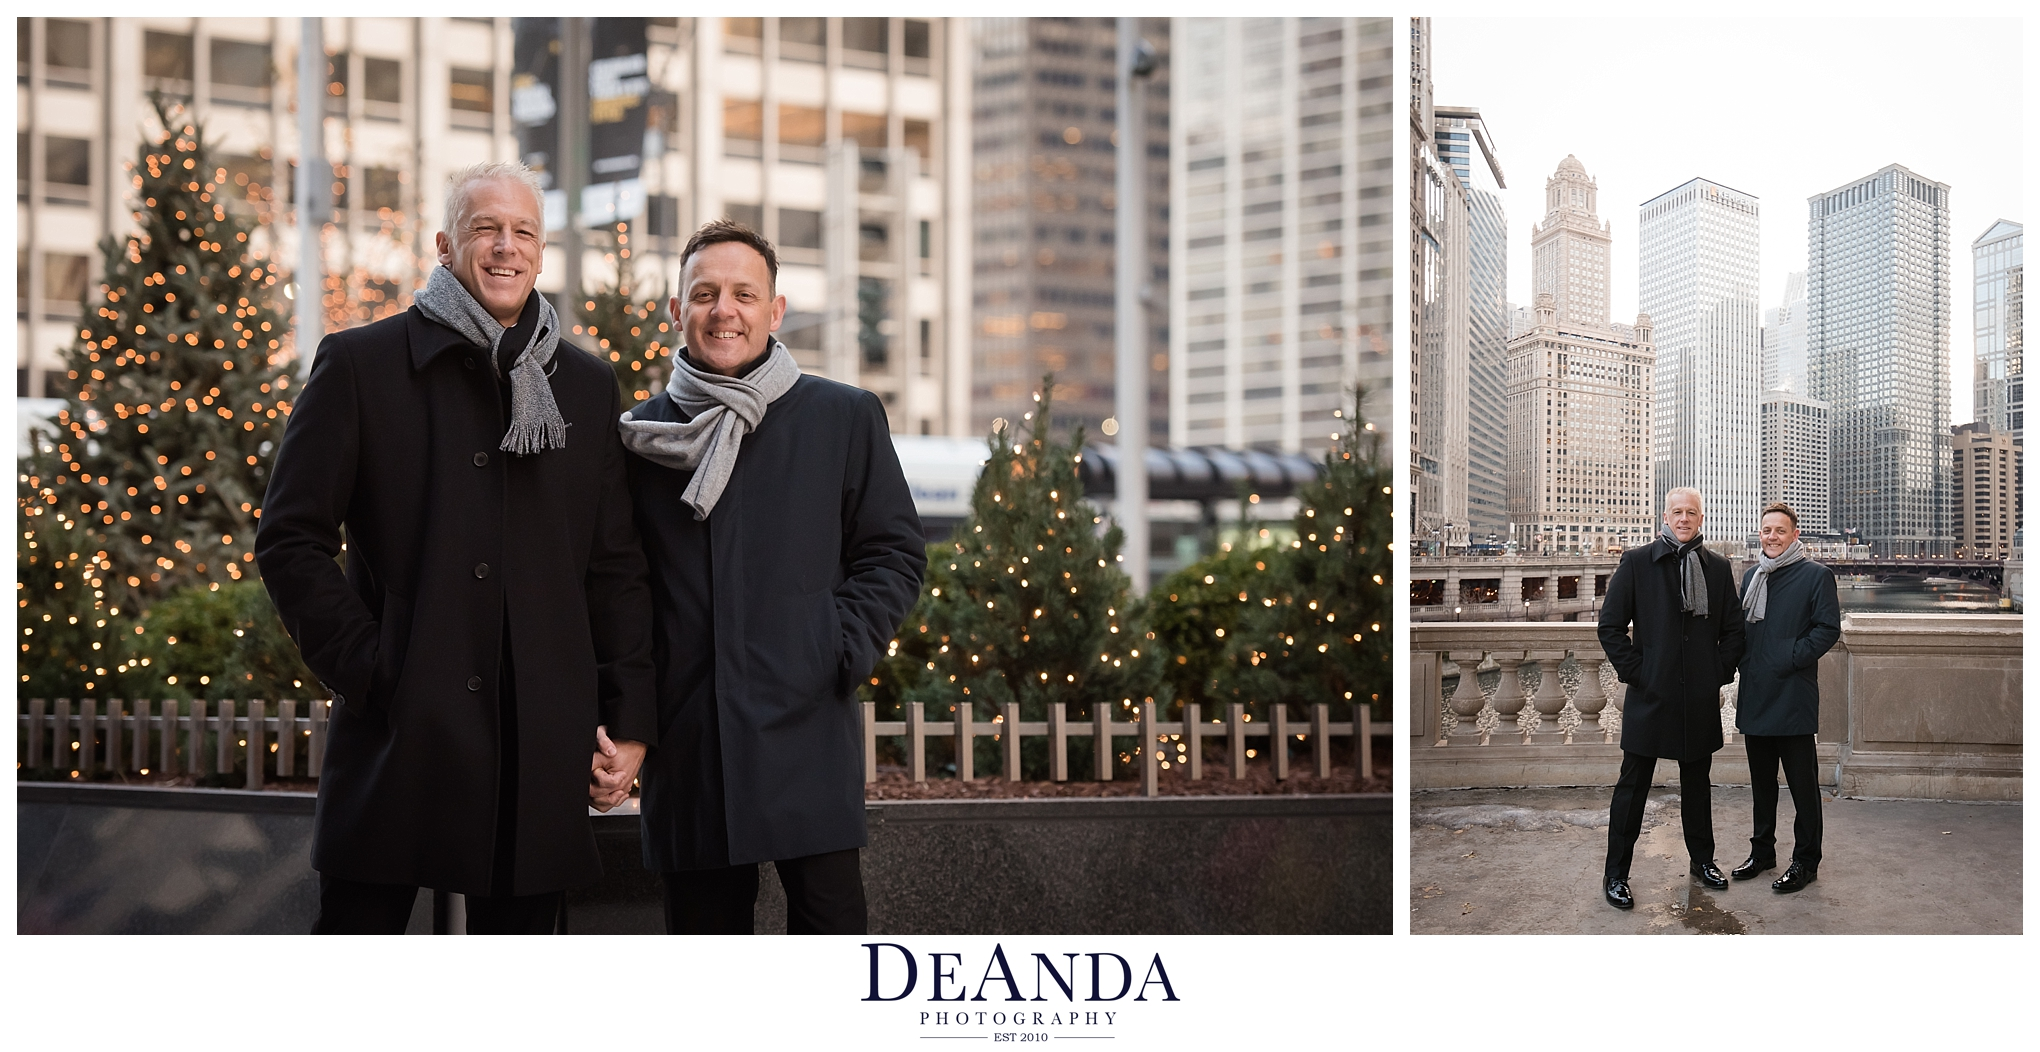 grooms portraits outside in Chicago during christmas time